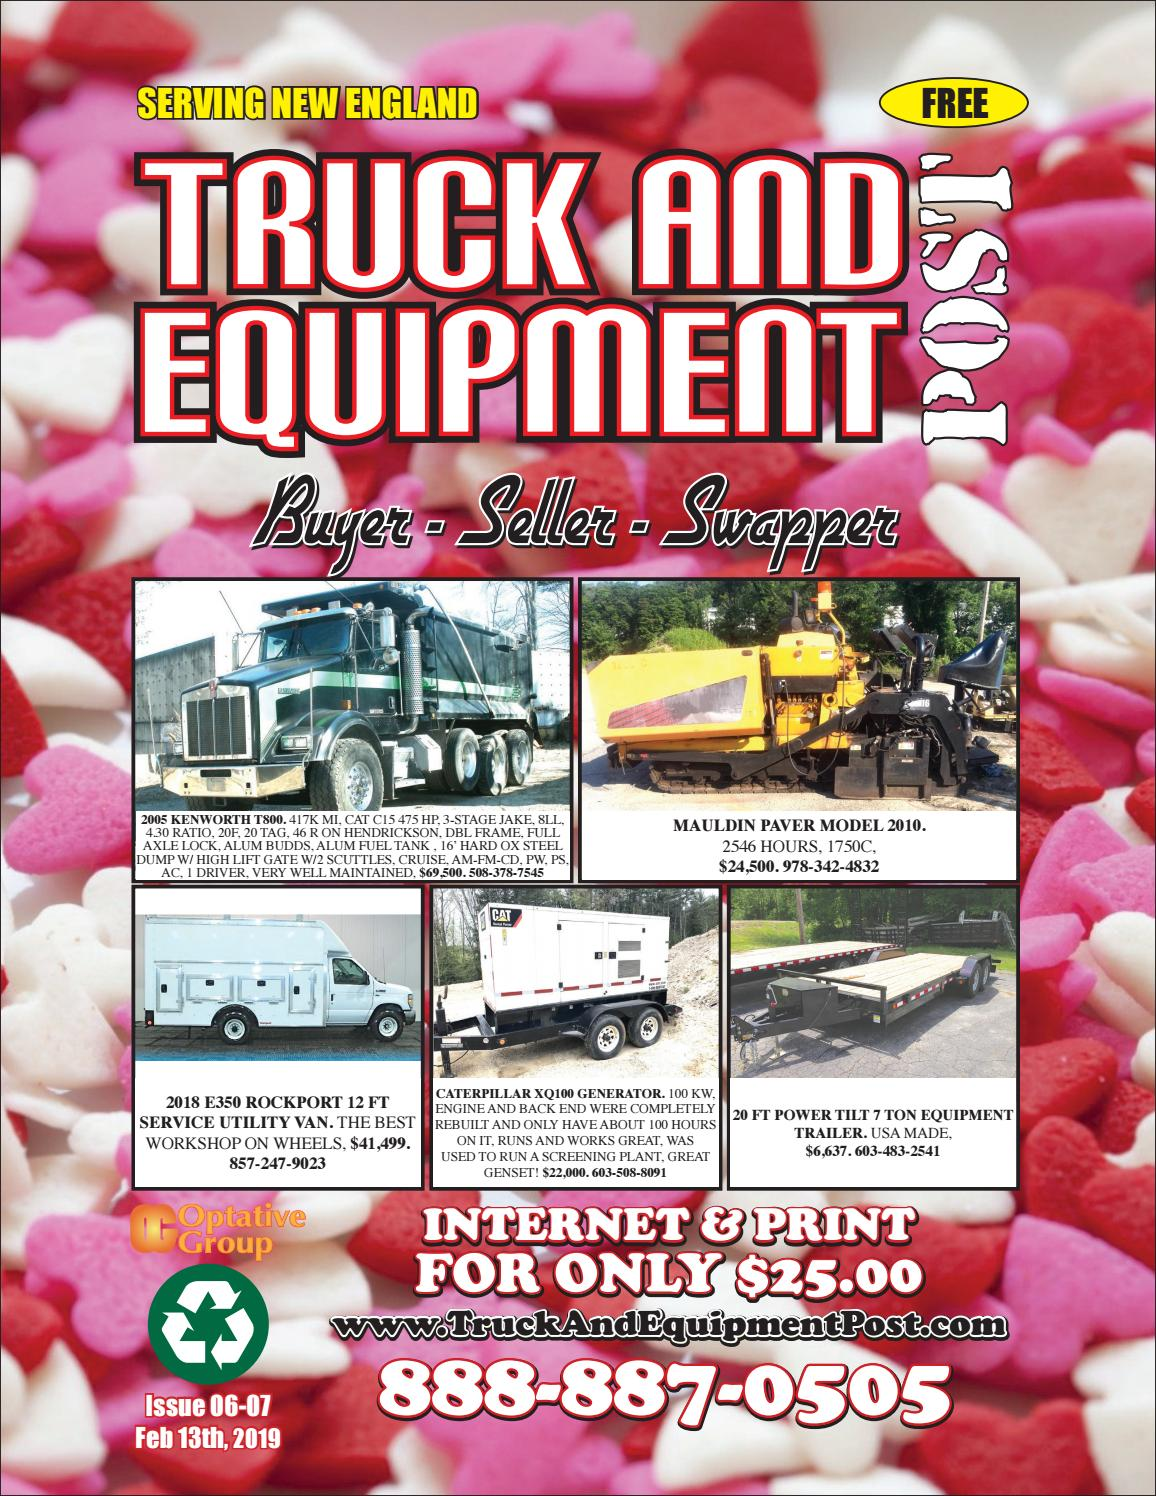 Truck And Equipment Post - Issue 06-07, 2019 by 1ClickAway